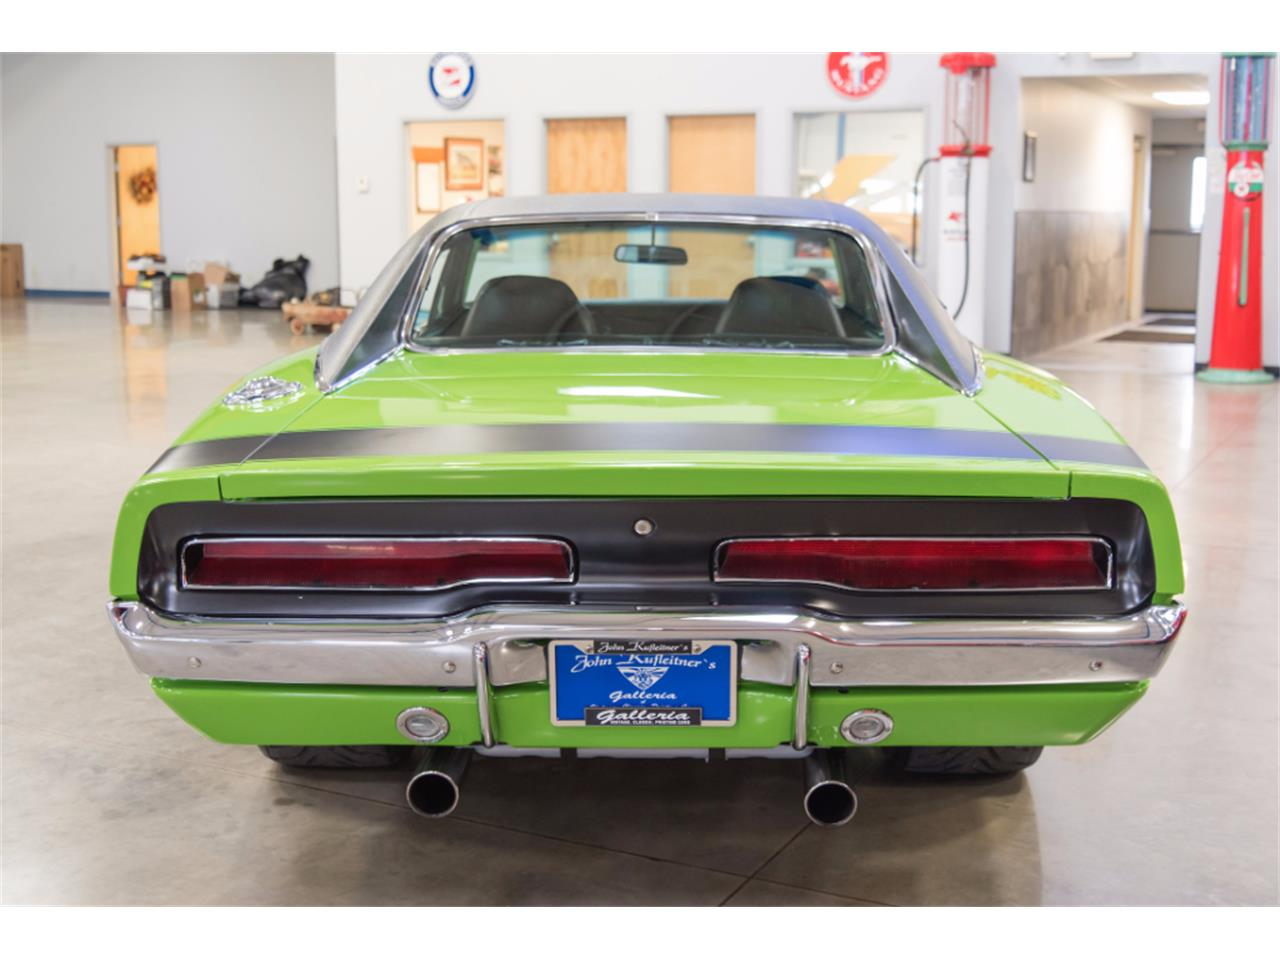 Large Picture of Classic '70 Dodge Charger located in Ohio Offered by John Kufleitner's Galleria - MB1Z